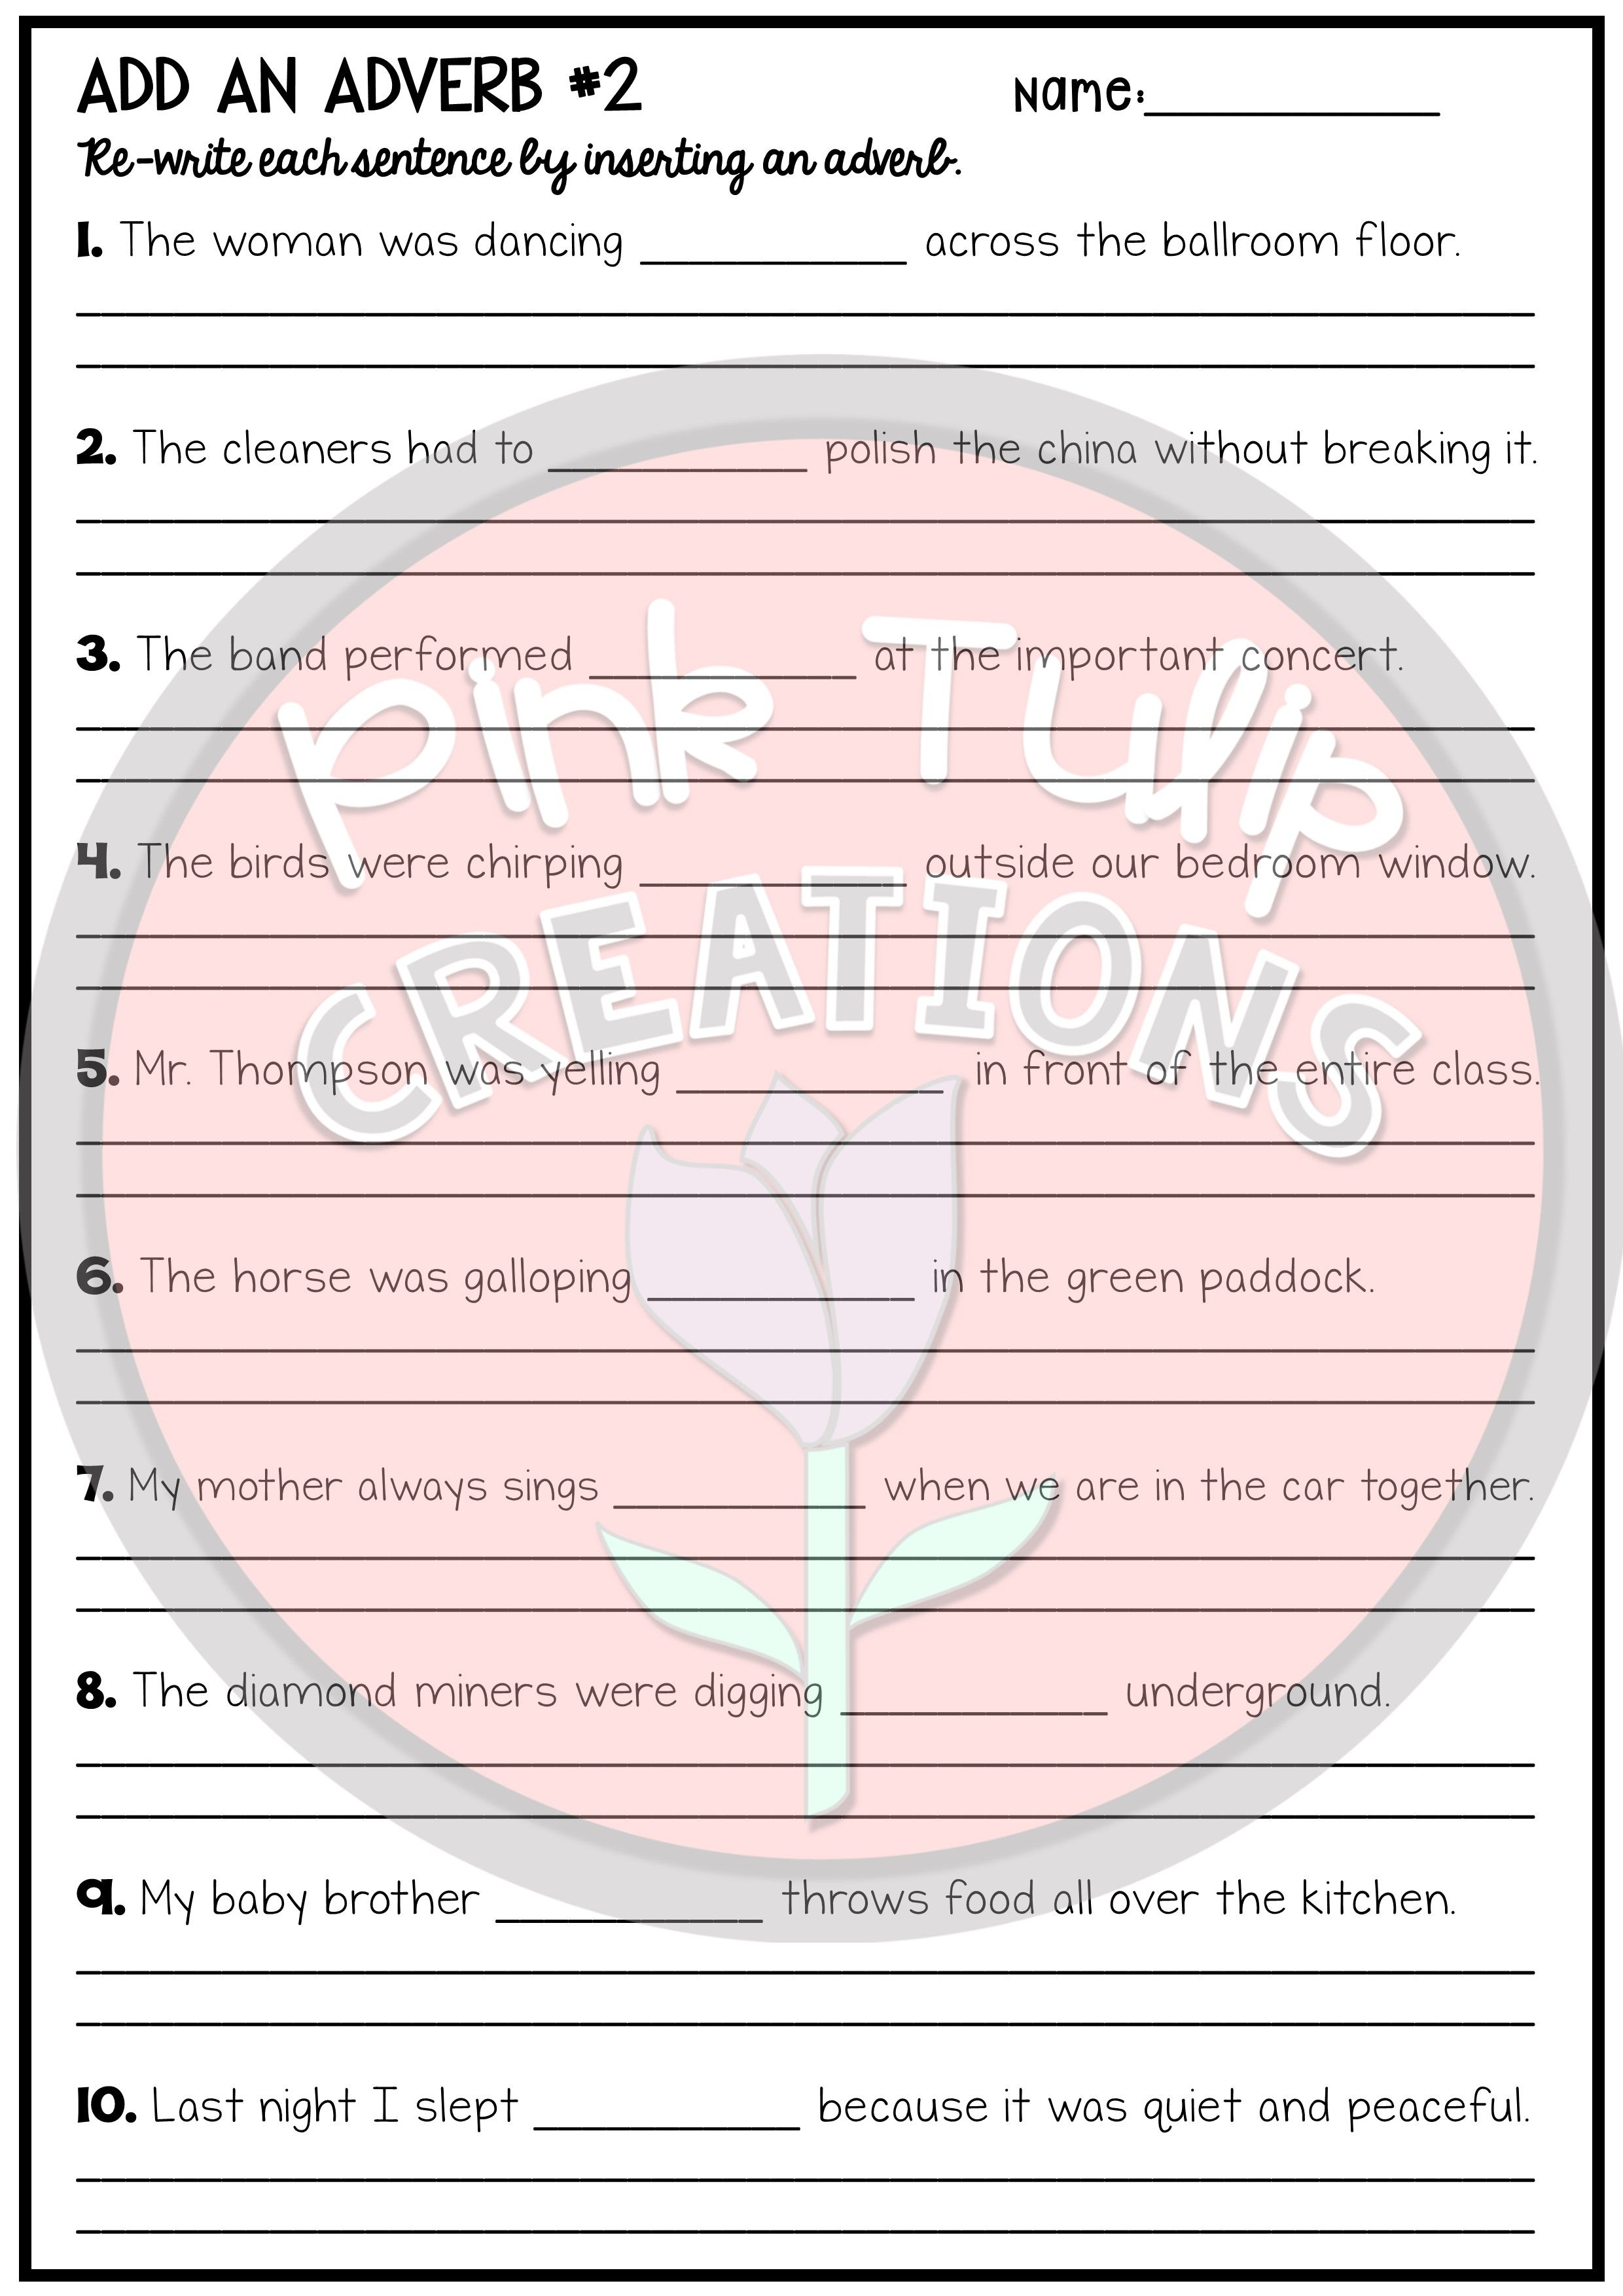 medium resolution of Add An Adverb To The Sentences - Worksheet Pack   Adverbs